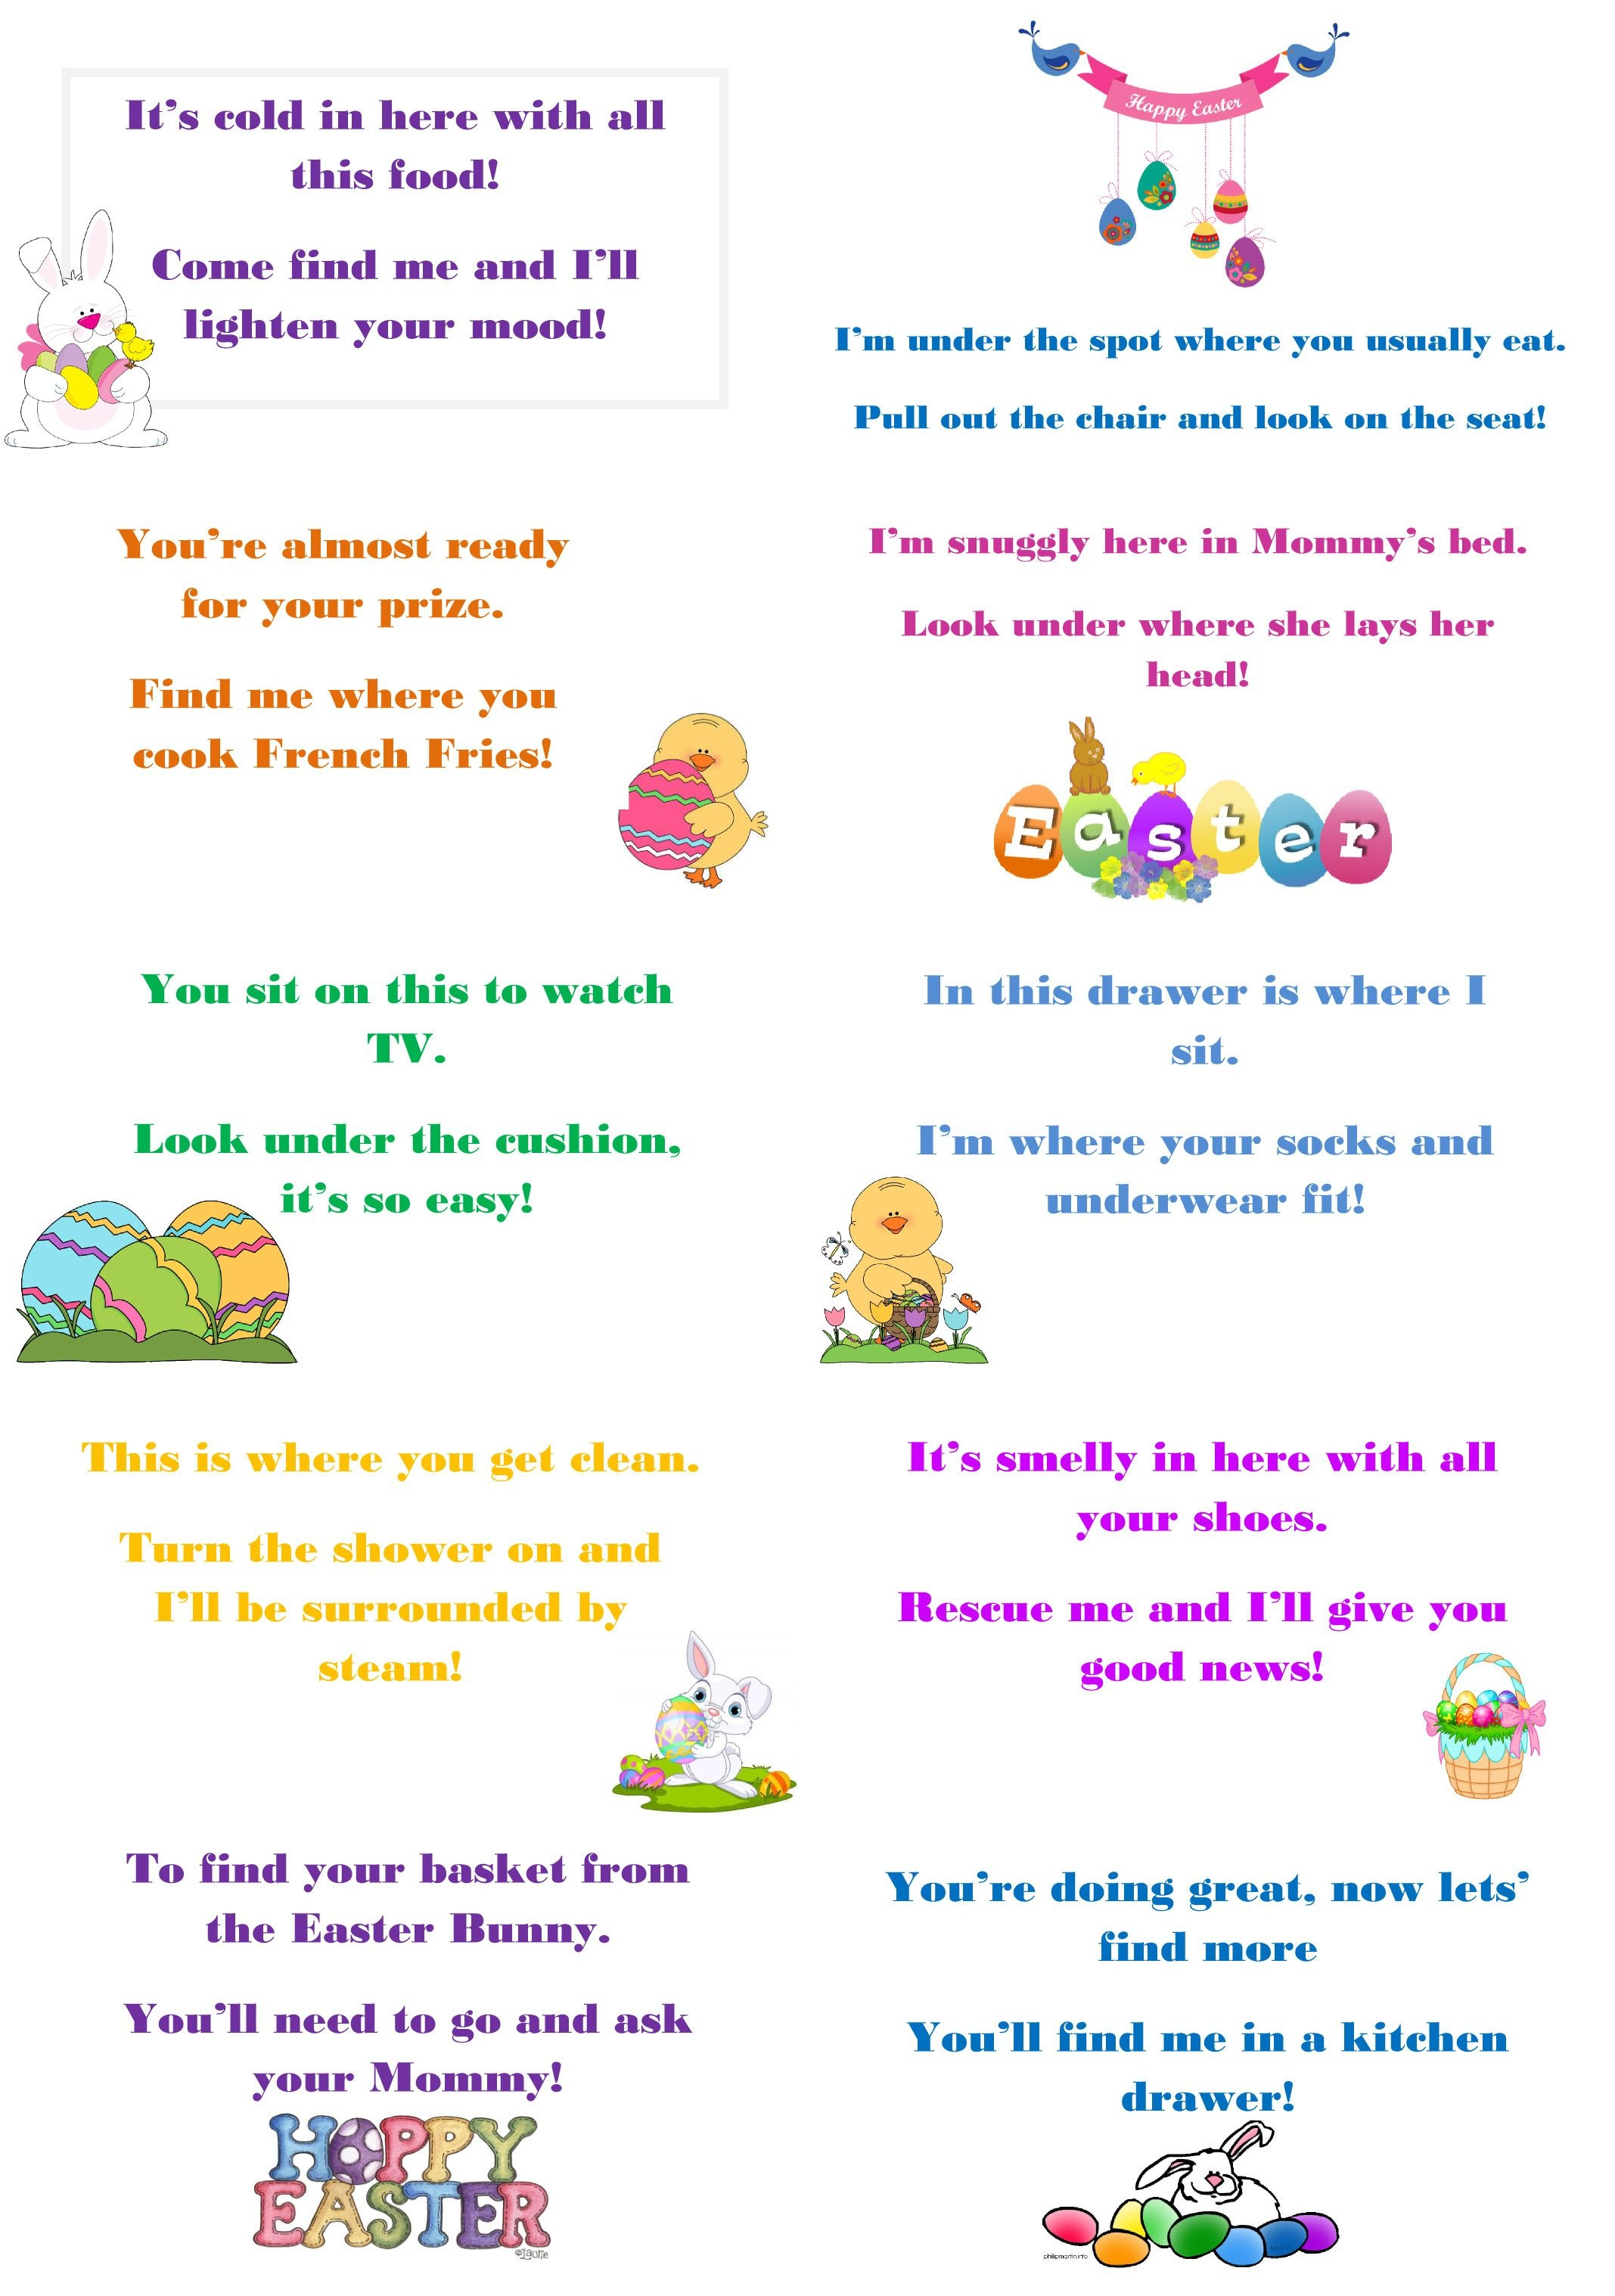 Free Printables From Clutterbug - Cleaning, Decluttering, Organizing - Free Printable Easter Egg Hunt Riddles